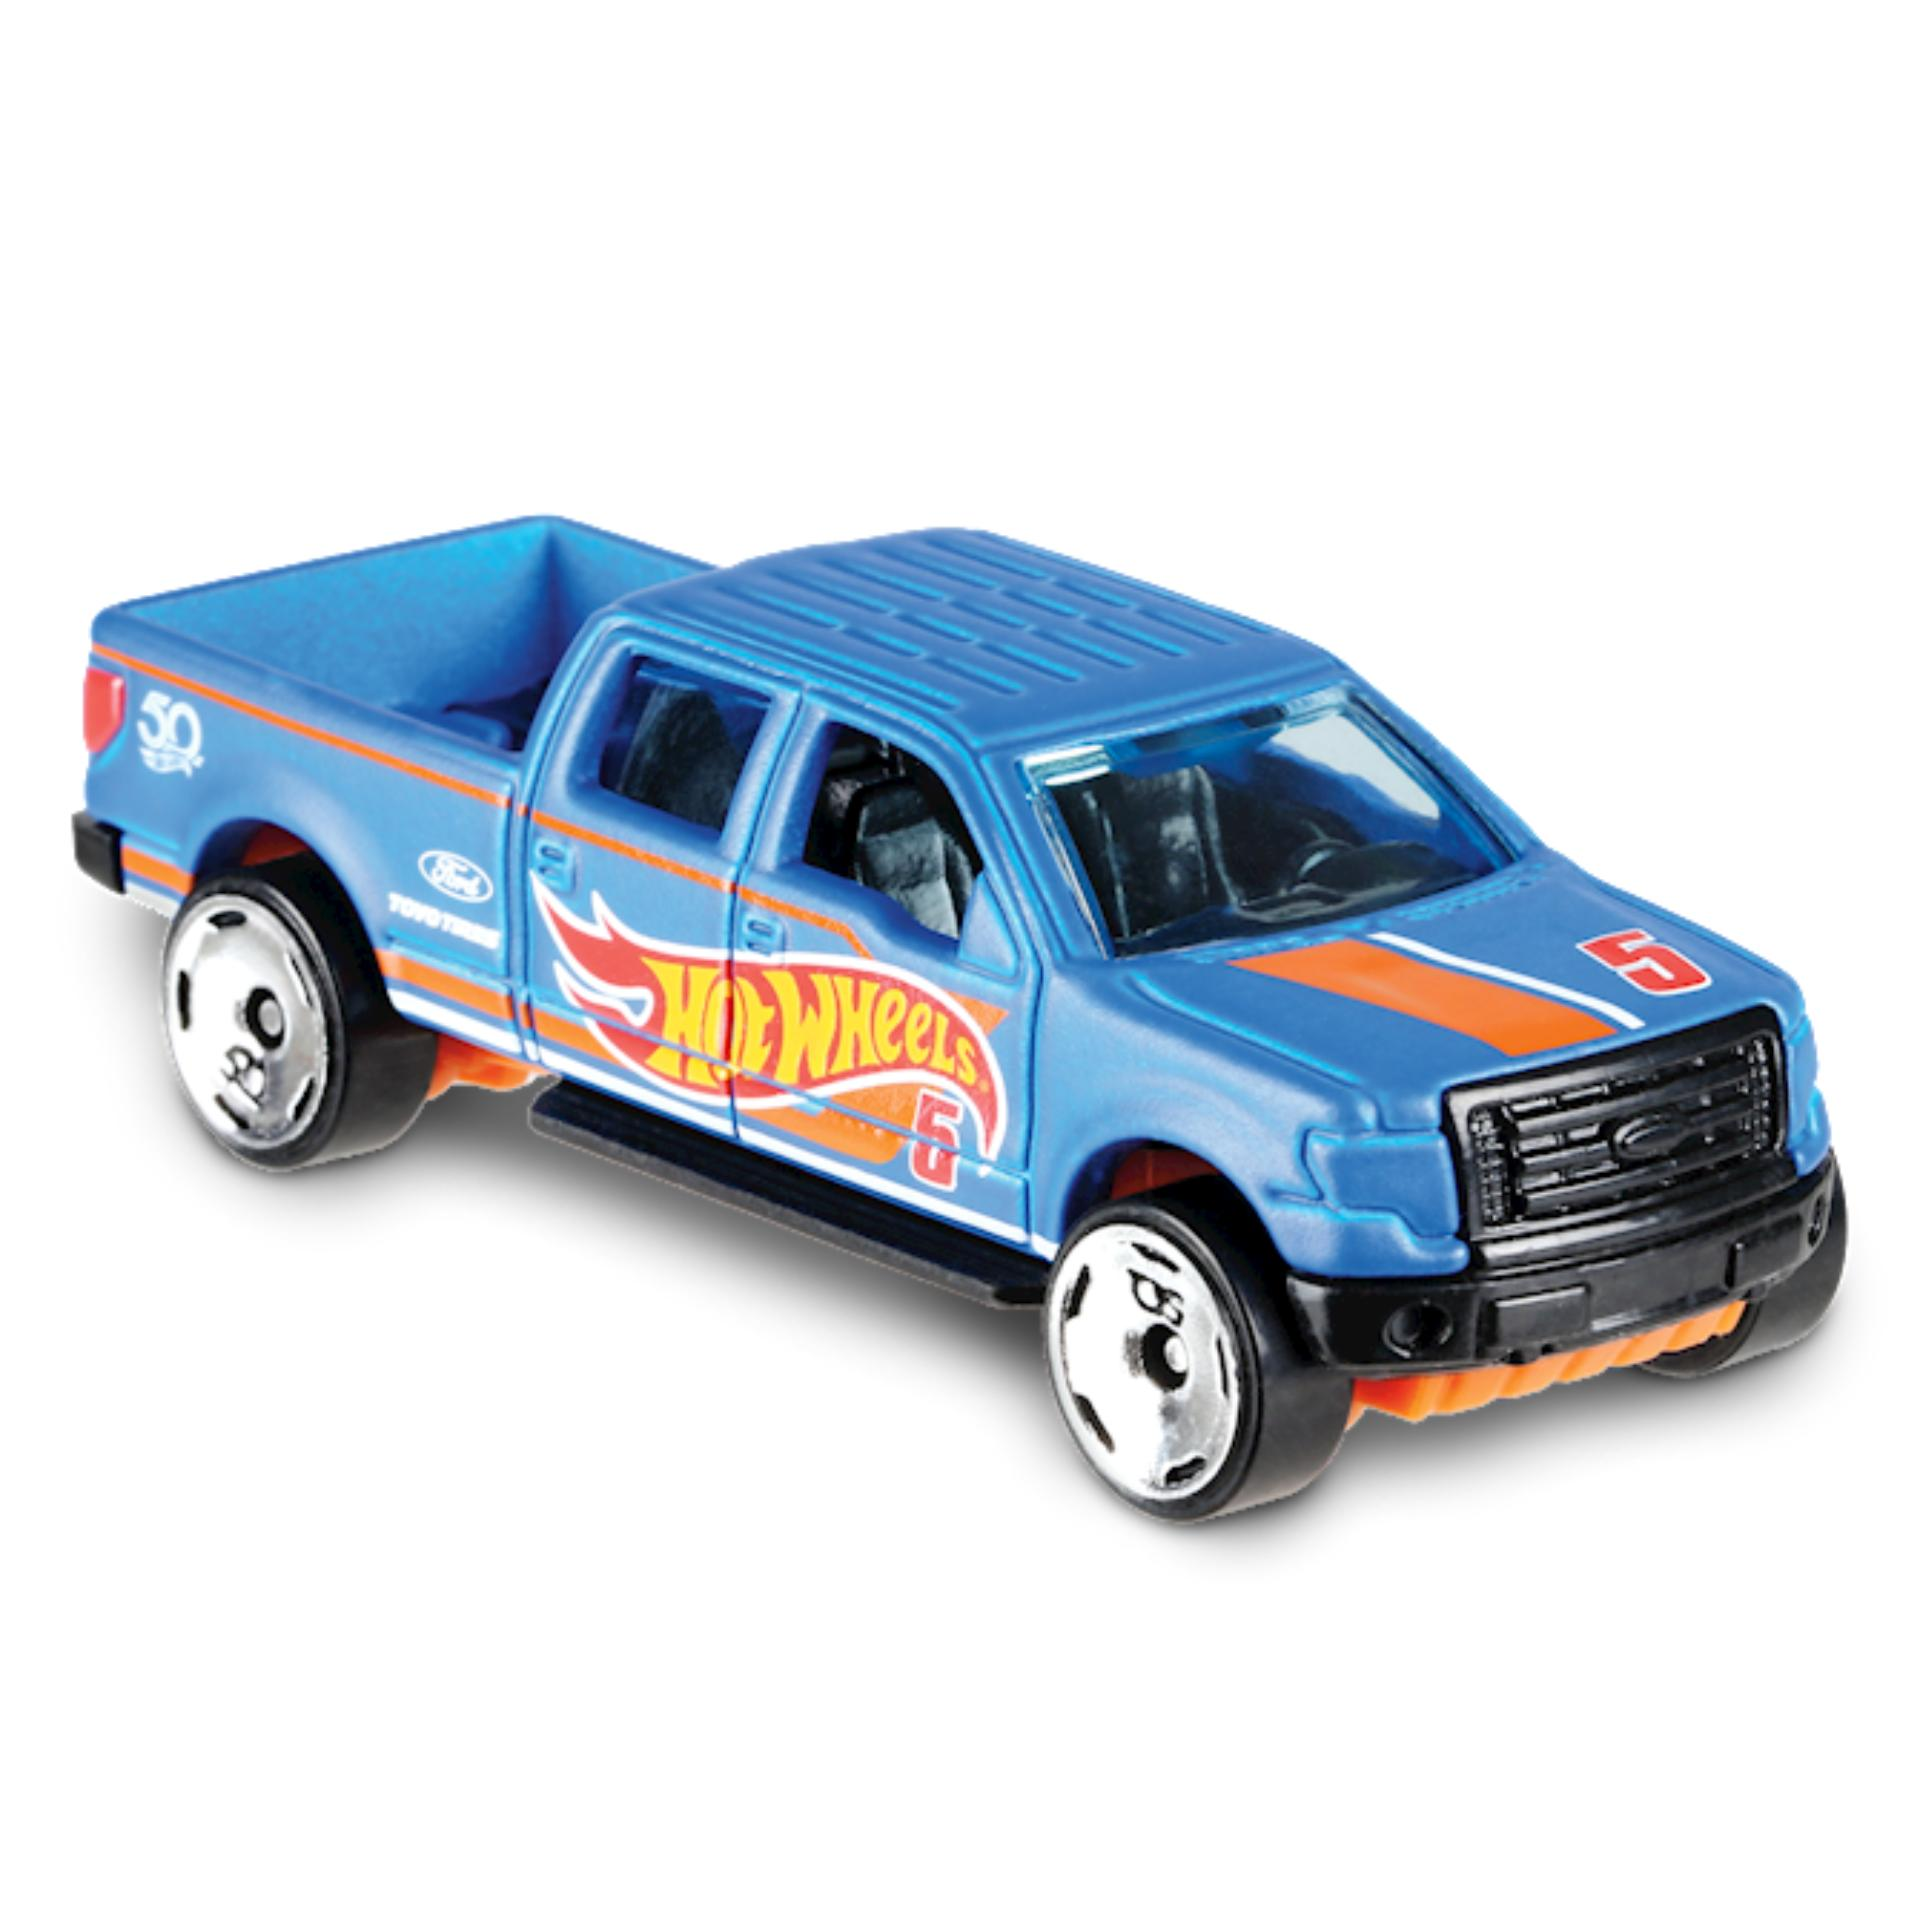 Hot Wheels Philippines Hot Wheels Price List Scooter Cars